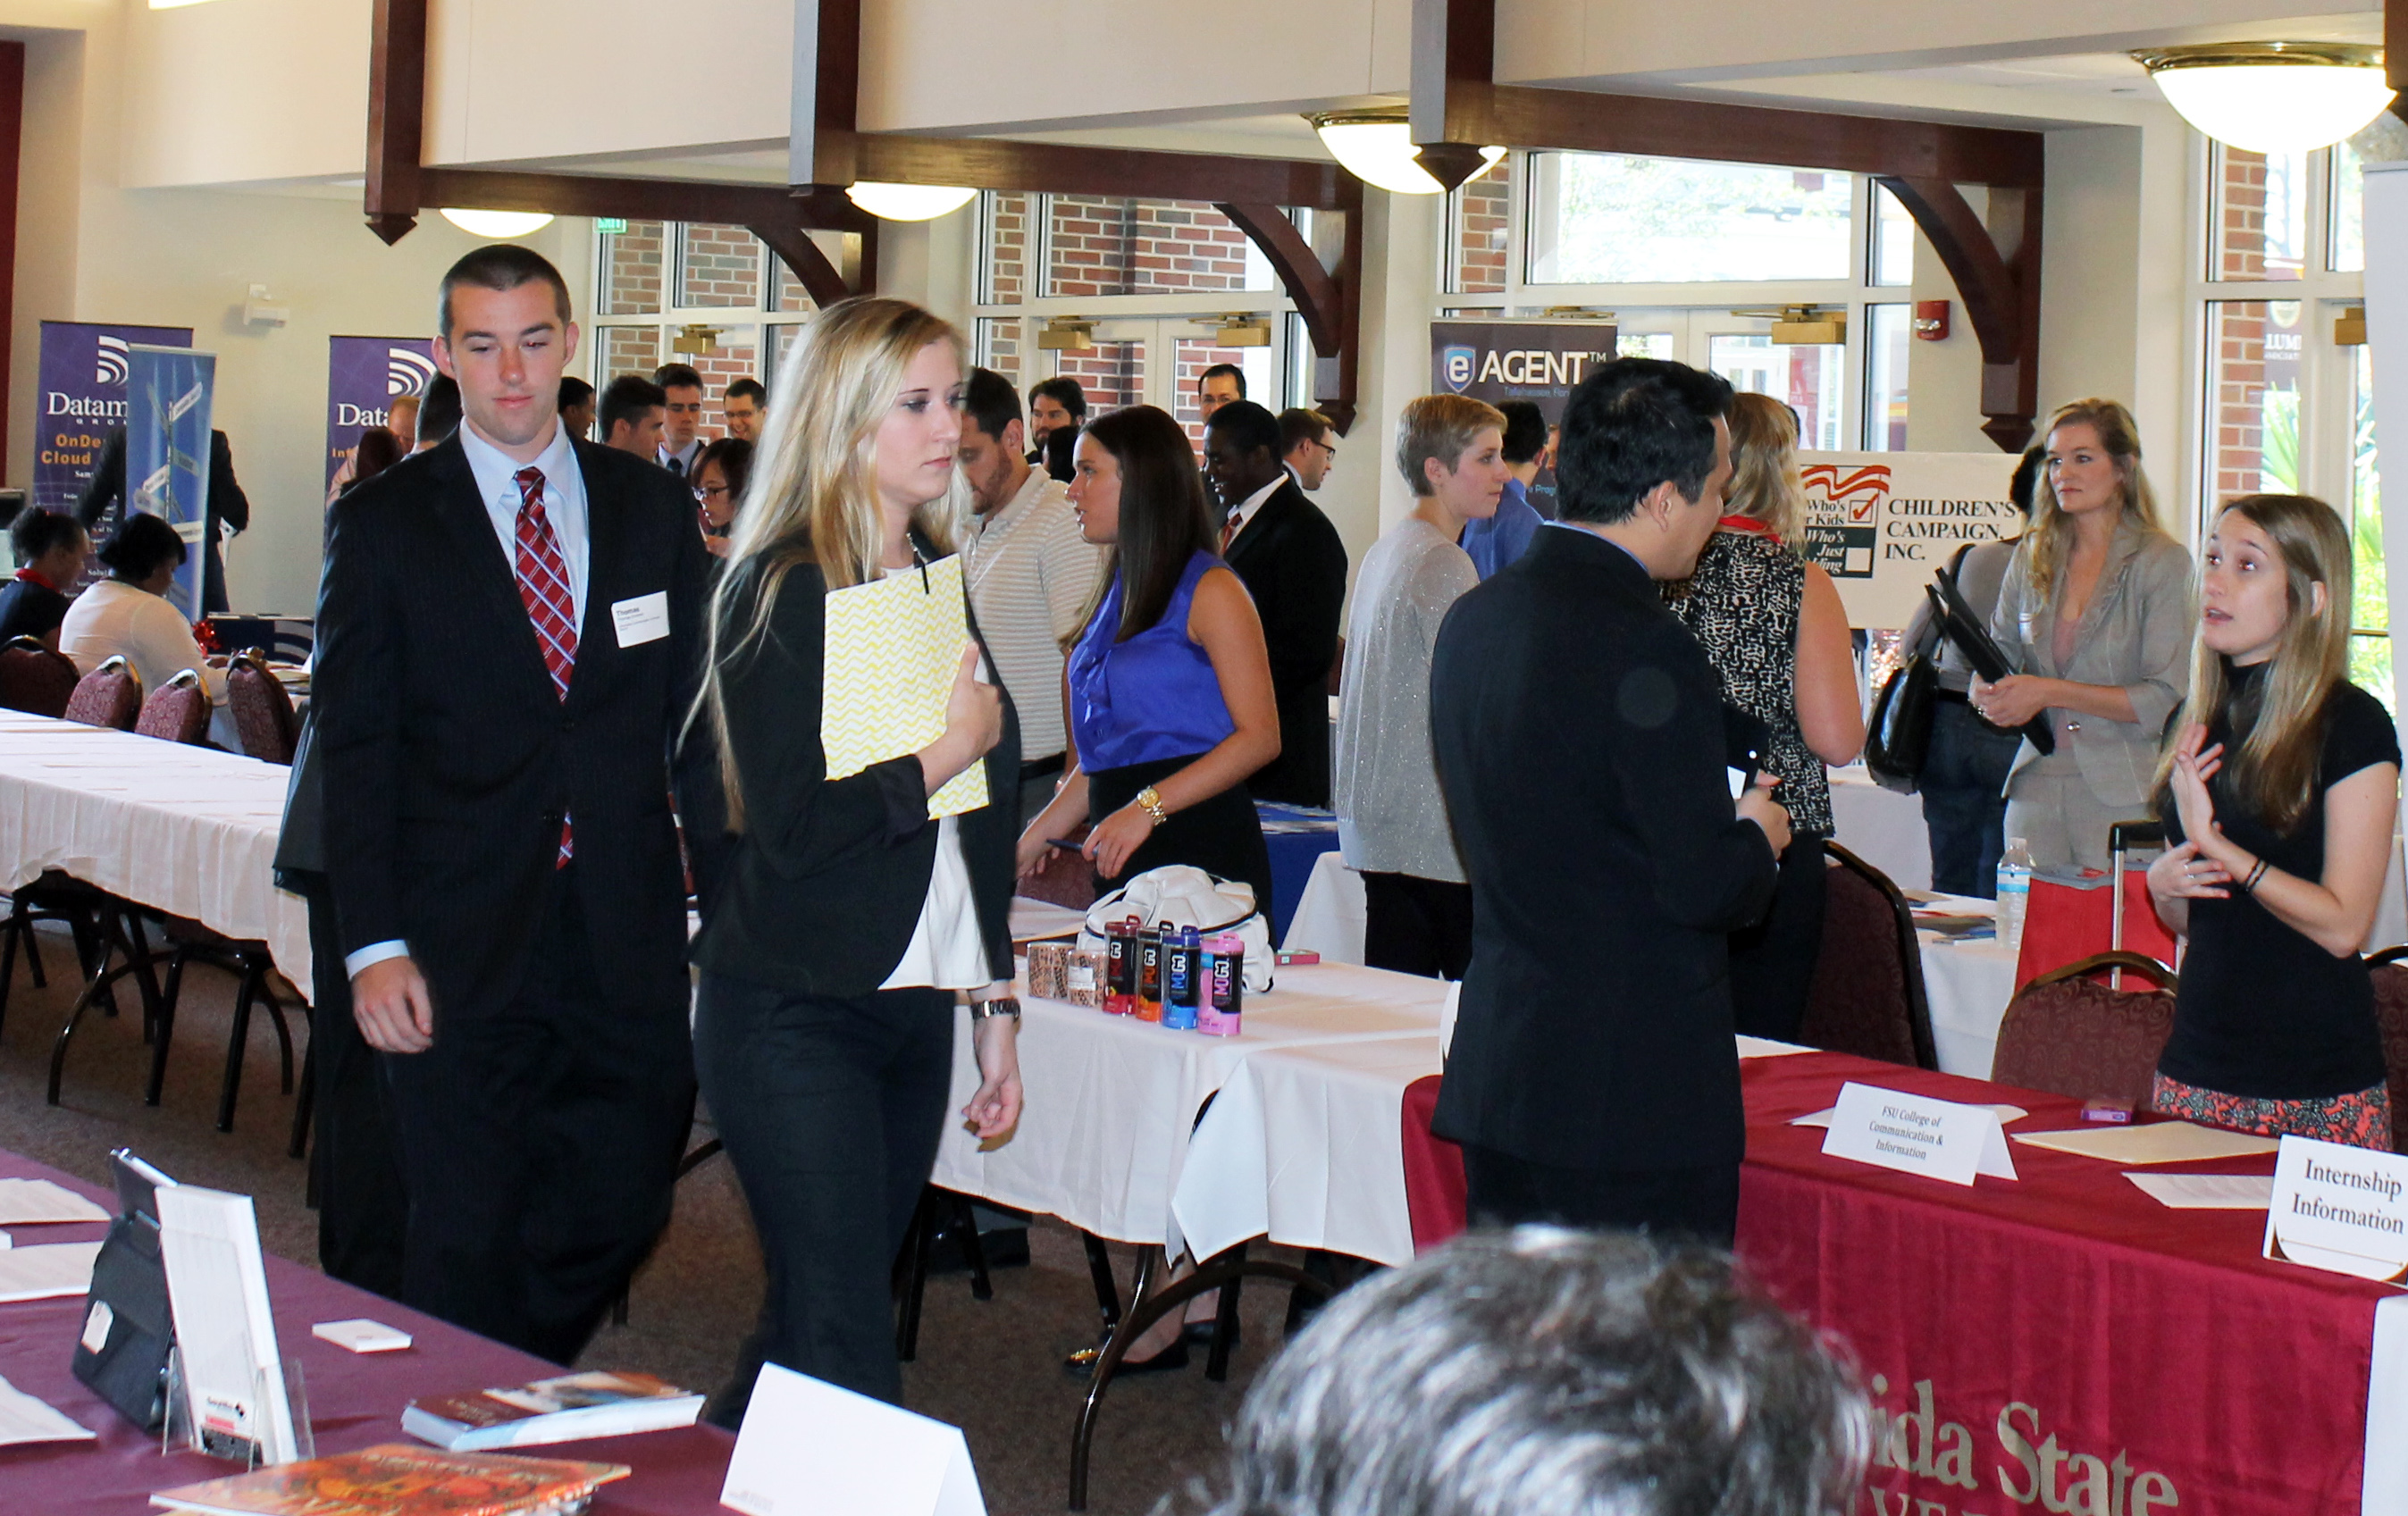 cci to host 2014 spring career fair on feb  24  u2013 school of